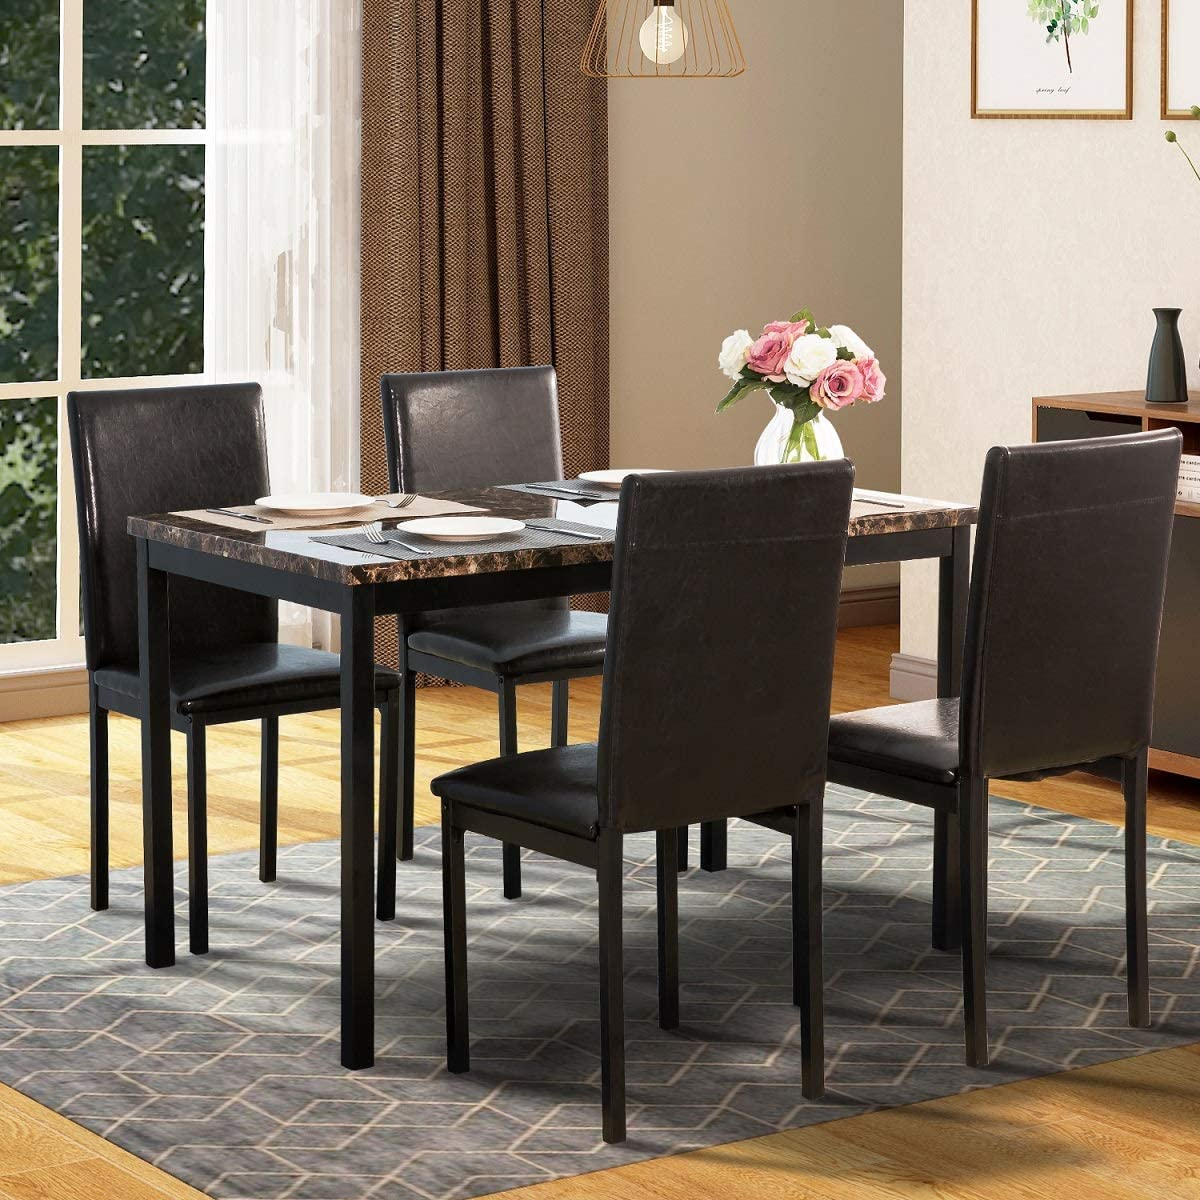 5 Piece Dining Room Table Set Modern Metal Dining Set With Faux Marble Top Dining Table And 4 Chairs Rectangular Dining Table Set Perfect For Bar Kitchen Small Spaces Furniture Black W13290